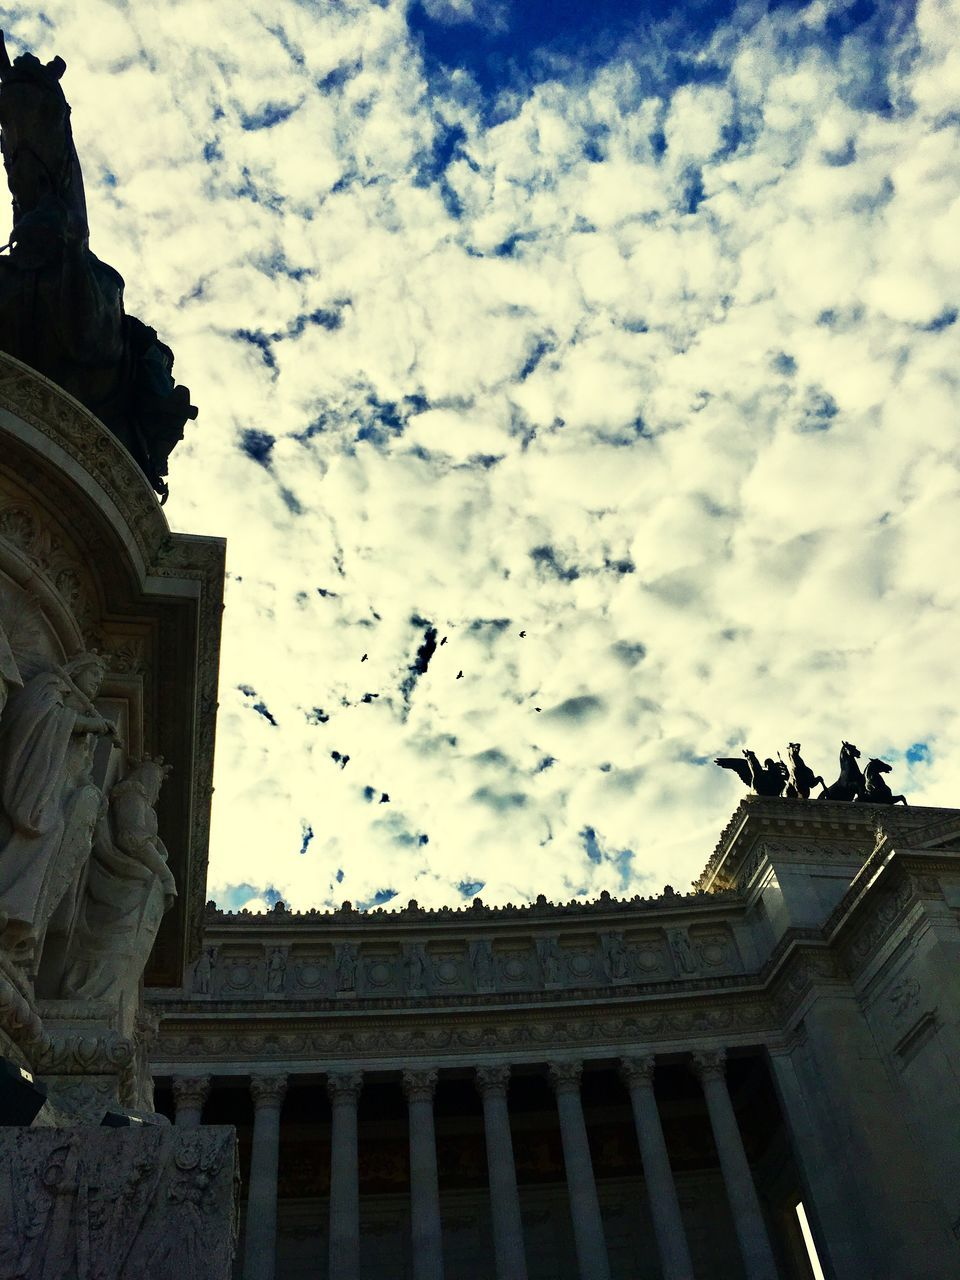 statue, sculpture, cloud - sky, sky, architecture, art and craft, low angle view, built structure, human representation, building exterior, history, creativity, outdoors, travel destinations, day, architectural column, no people, city